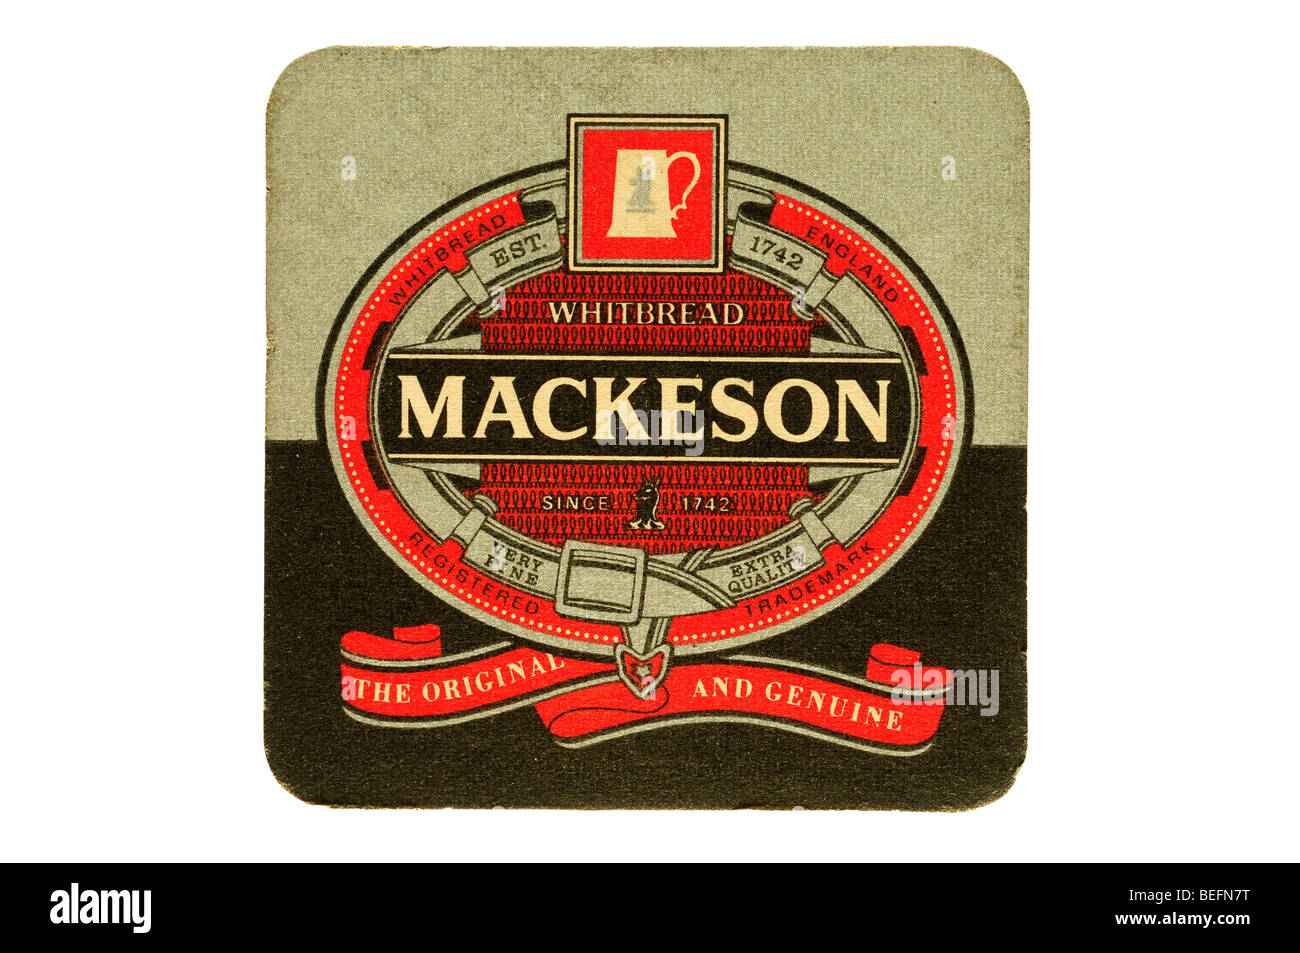 whitbread england est 1742 mackeson the original and genuine beer mat - Stock Image